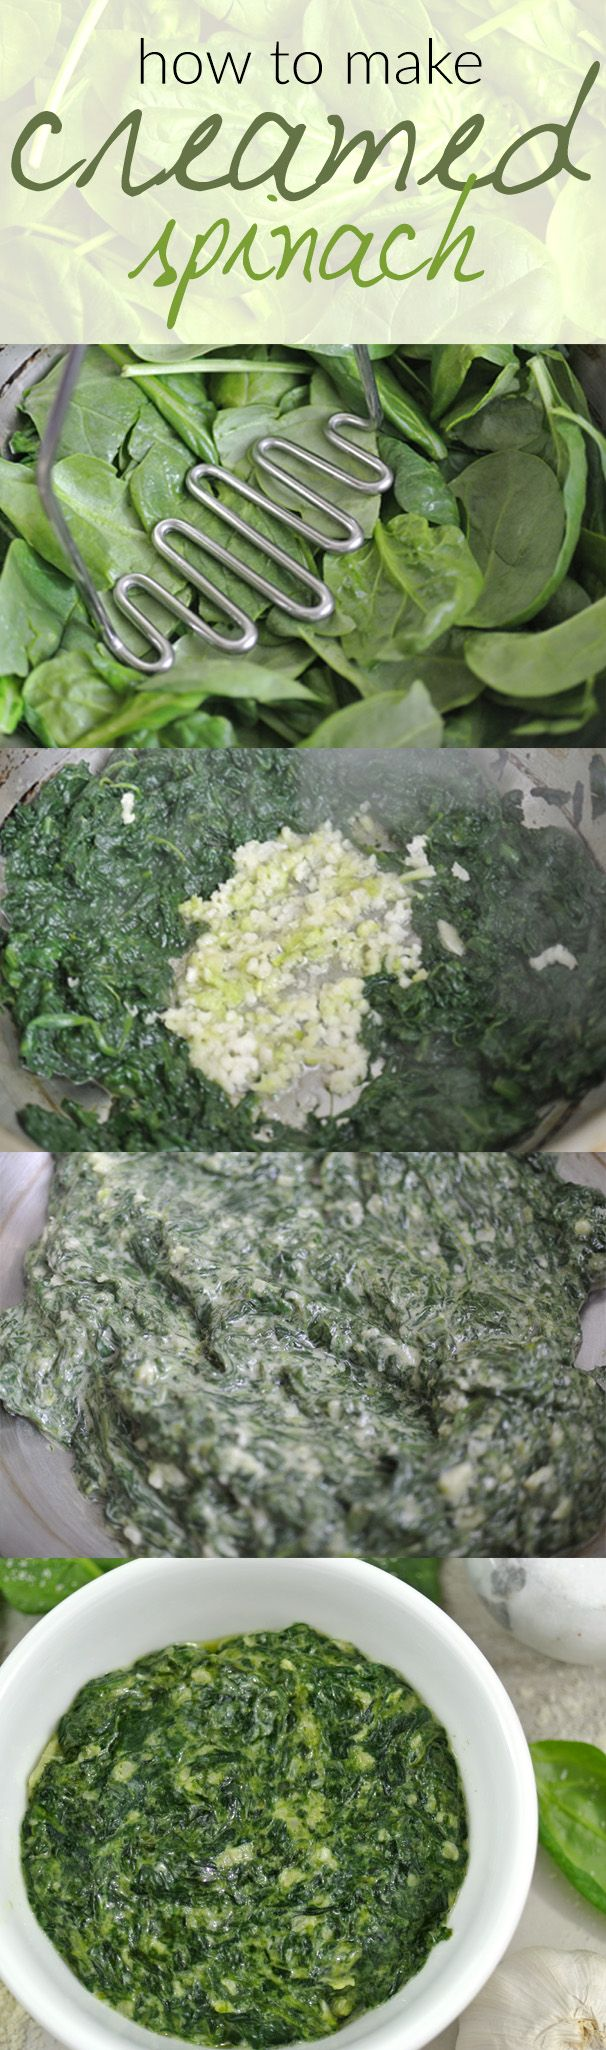 Looking for a low carb side dish? Look no further because this creamed spinach recipe is a healthy and easy choice! We love making this recipe to go along a low carb dinner like fish or crispy chicken thighs. It's creamy, cheesy and ready in minutes! Pin it for dinner later! www.tasteaholics.com